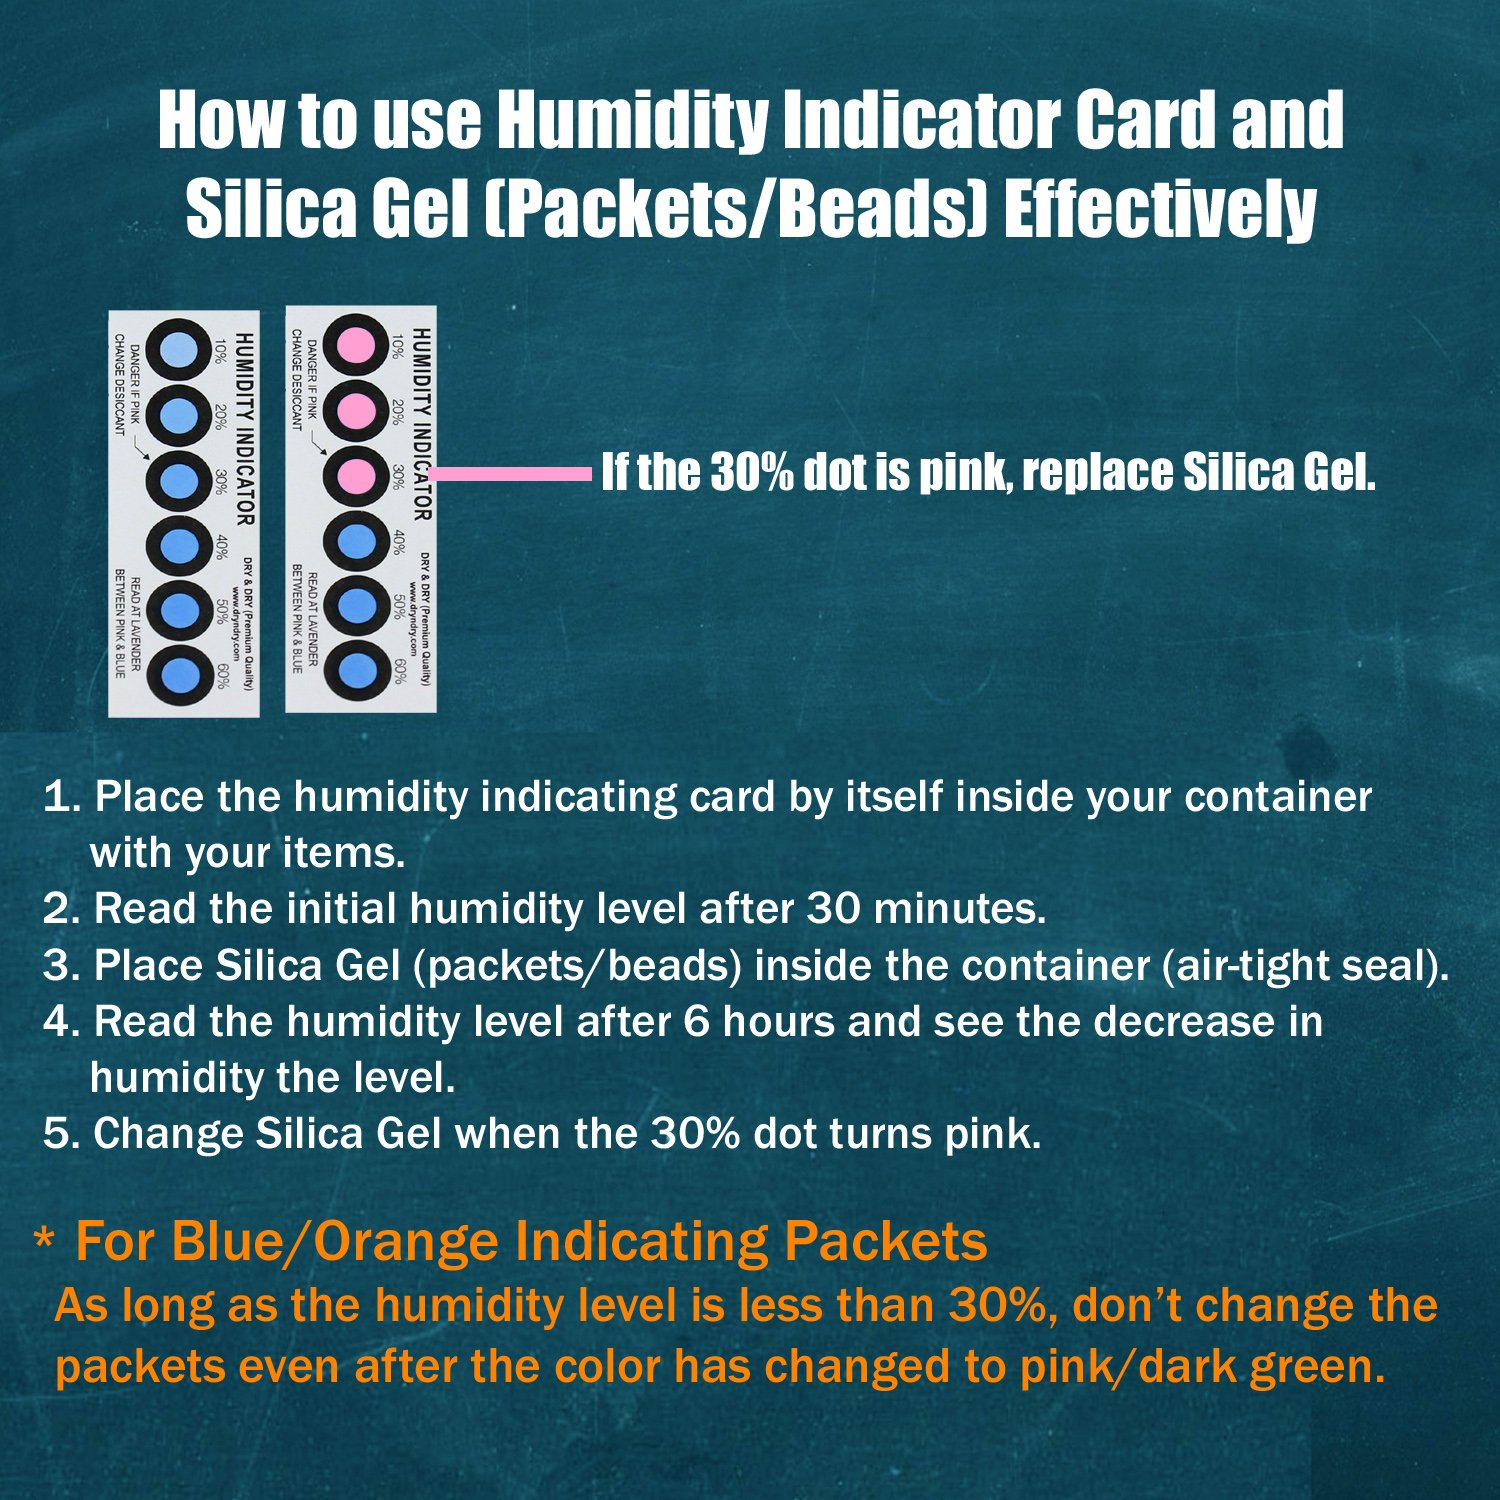 Premium Humidity Indicator Cards 20 Packreusable 6 Spot20 Blue Gell Silica Baby